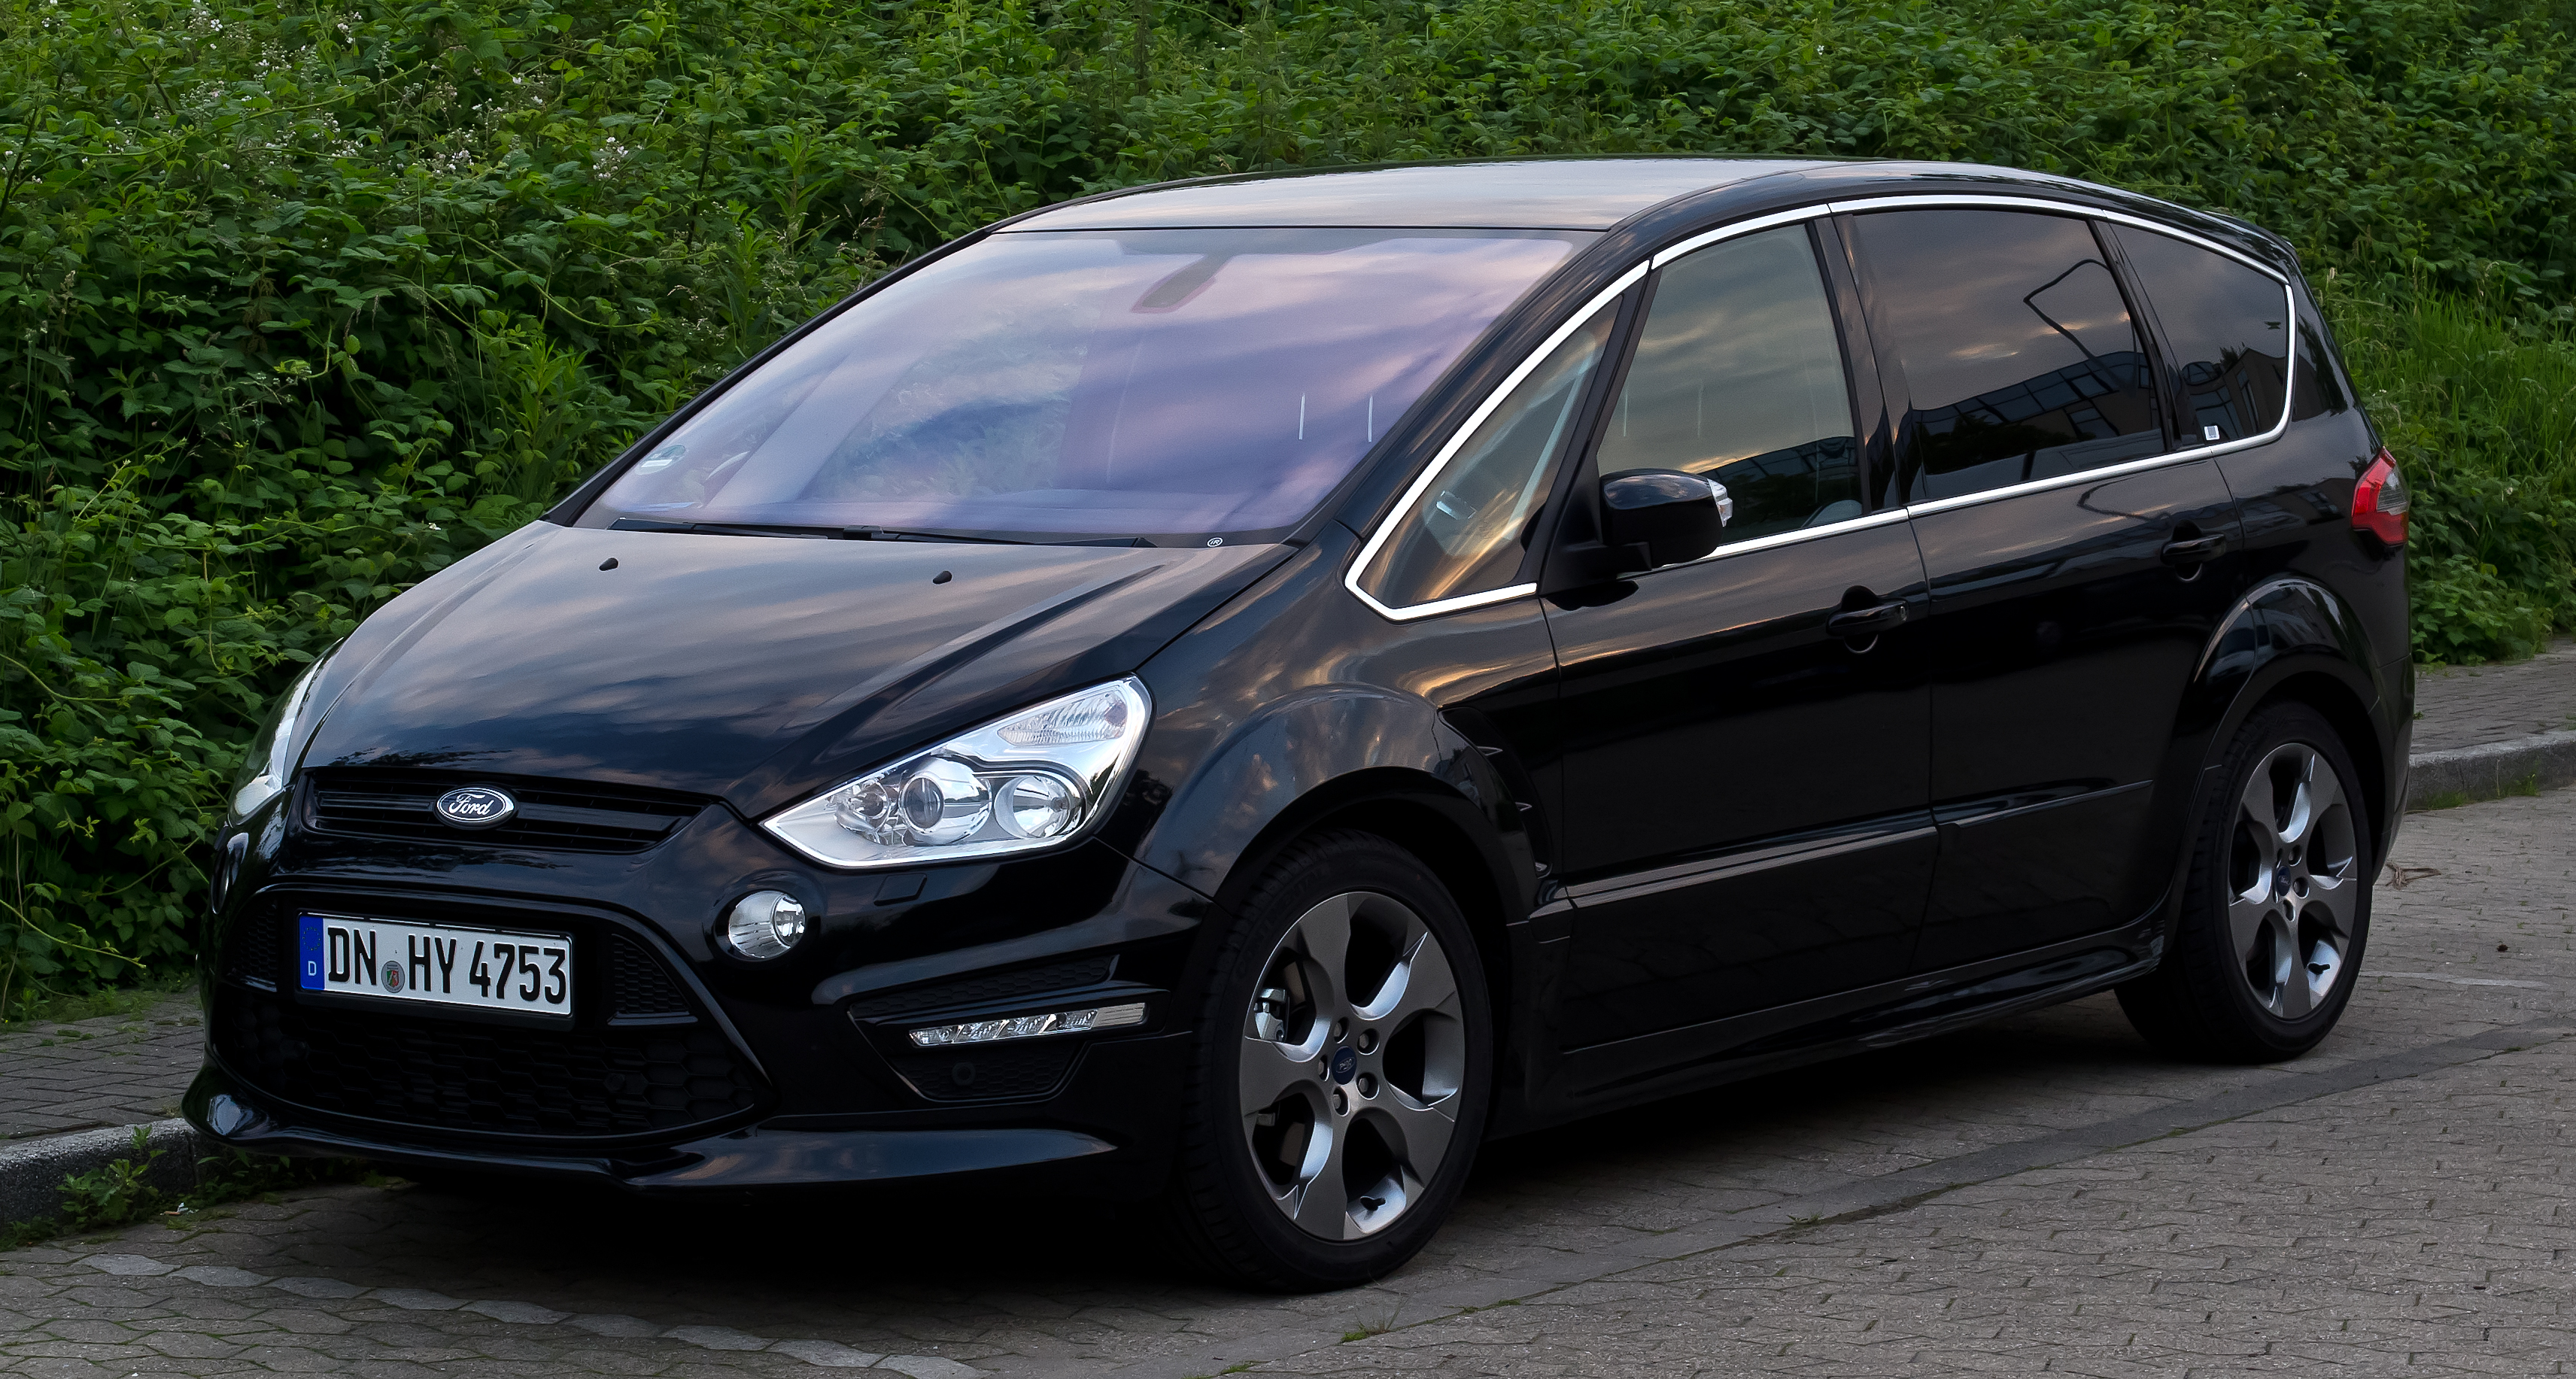 datei ford s max titanium s facelift frontansicht 18 juni 2012 wikipedia. Black Bedroom Furniture Sets. Home Design Ideas